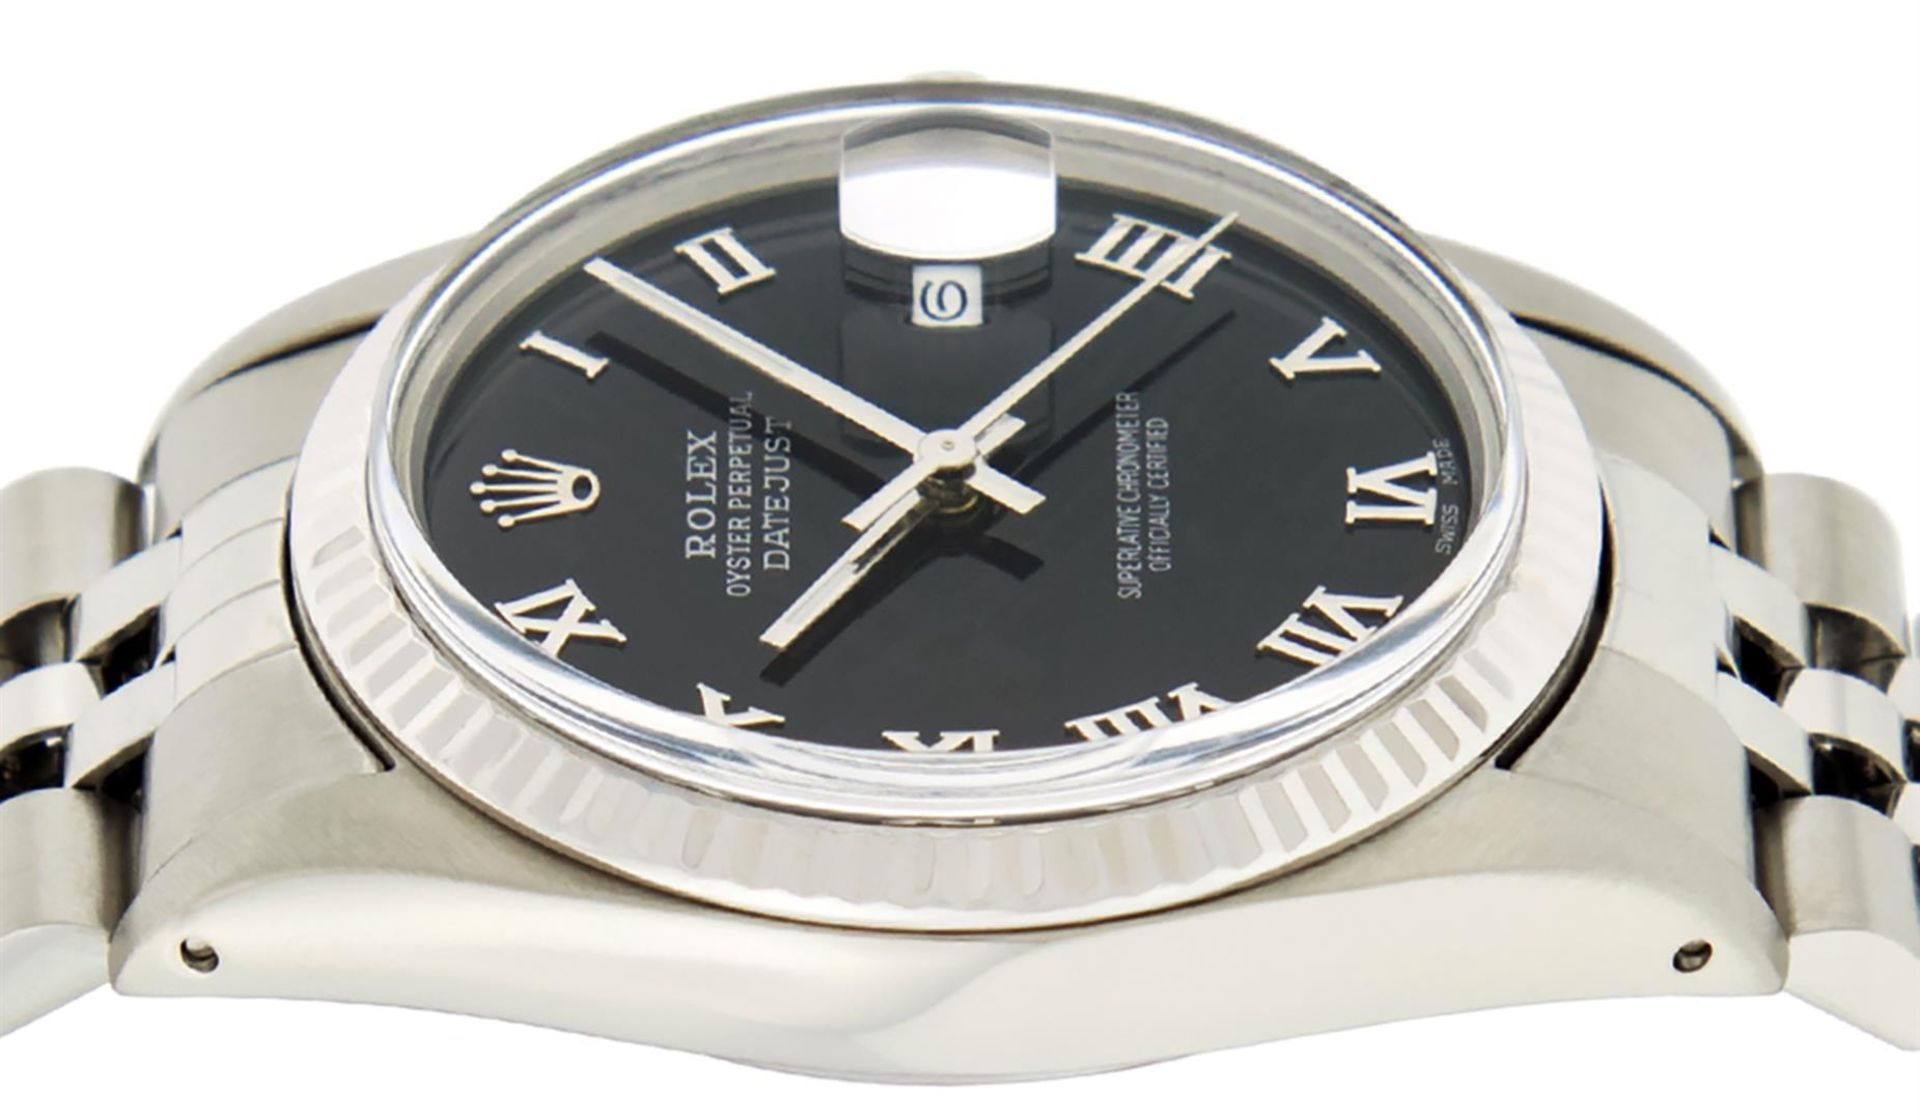 Rolex Mens Stainless Steel Black Roman Datejust 36MM Wriswatch Datejust - Image 8 of 8